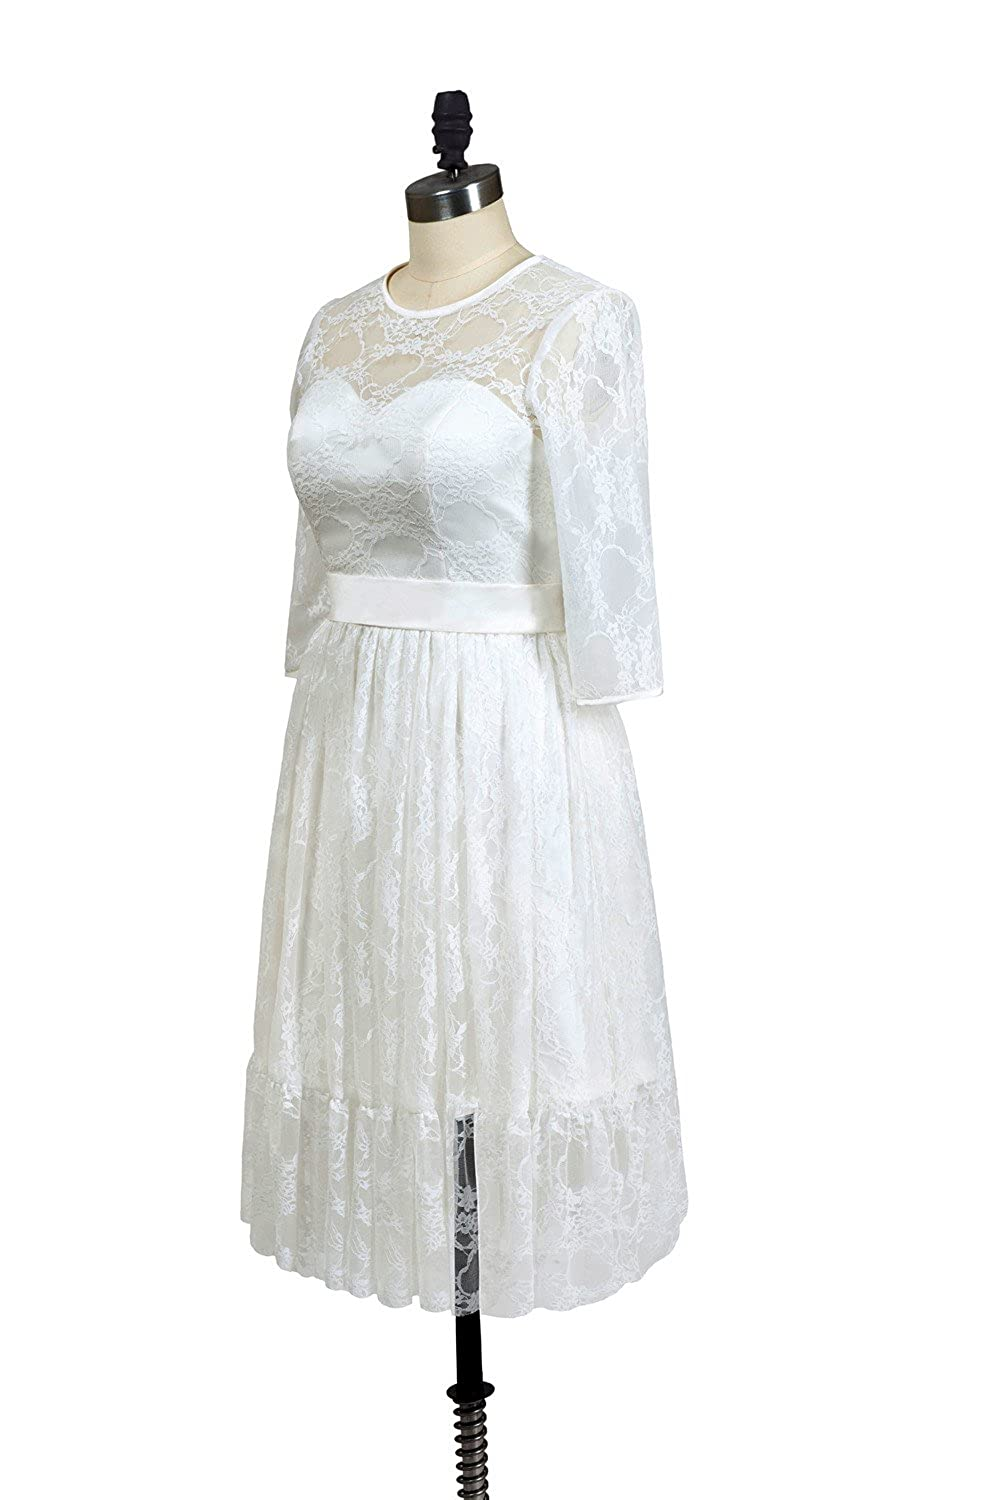 eed7e9c5b26 Dressilymall Women s Ivory Lace Prom Dress Wedding Short Evening Gown with  Sash at Amazon Women s Clothing store